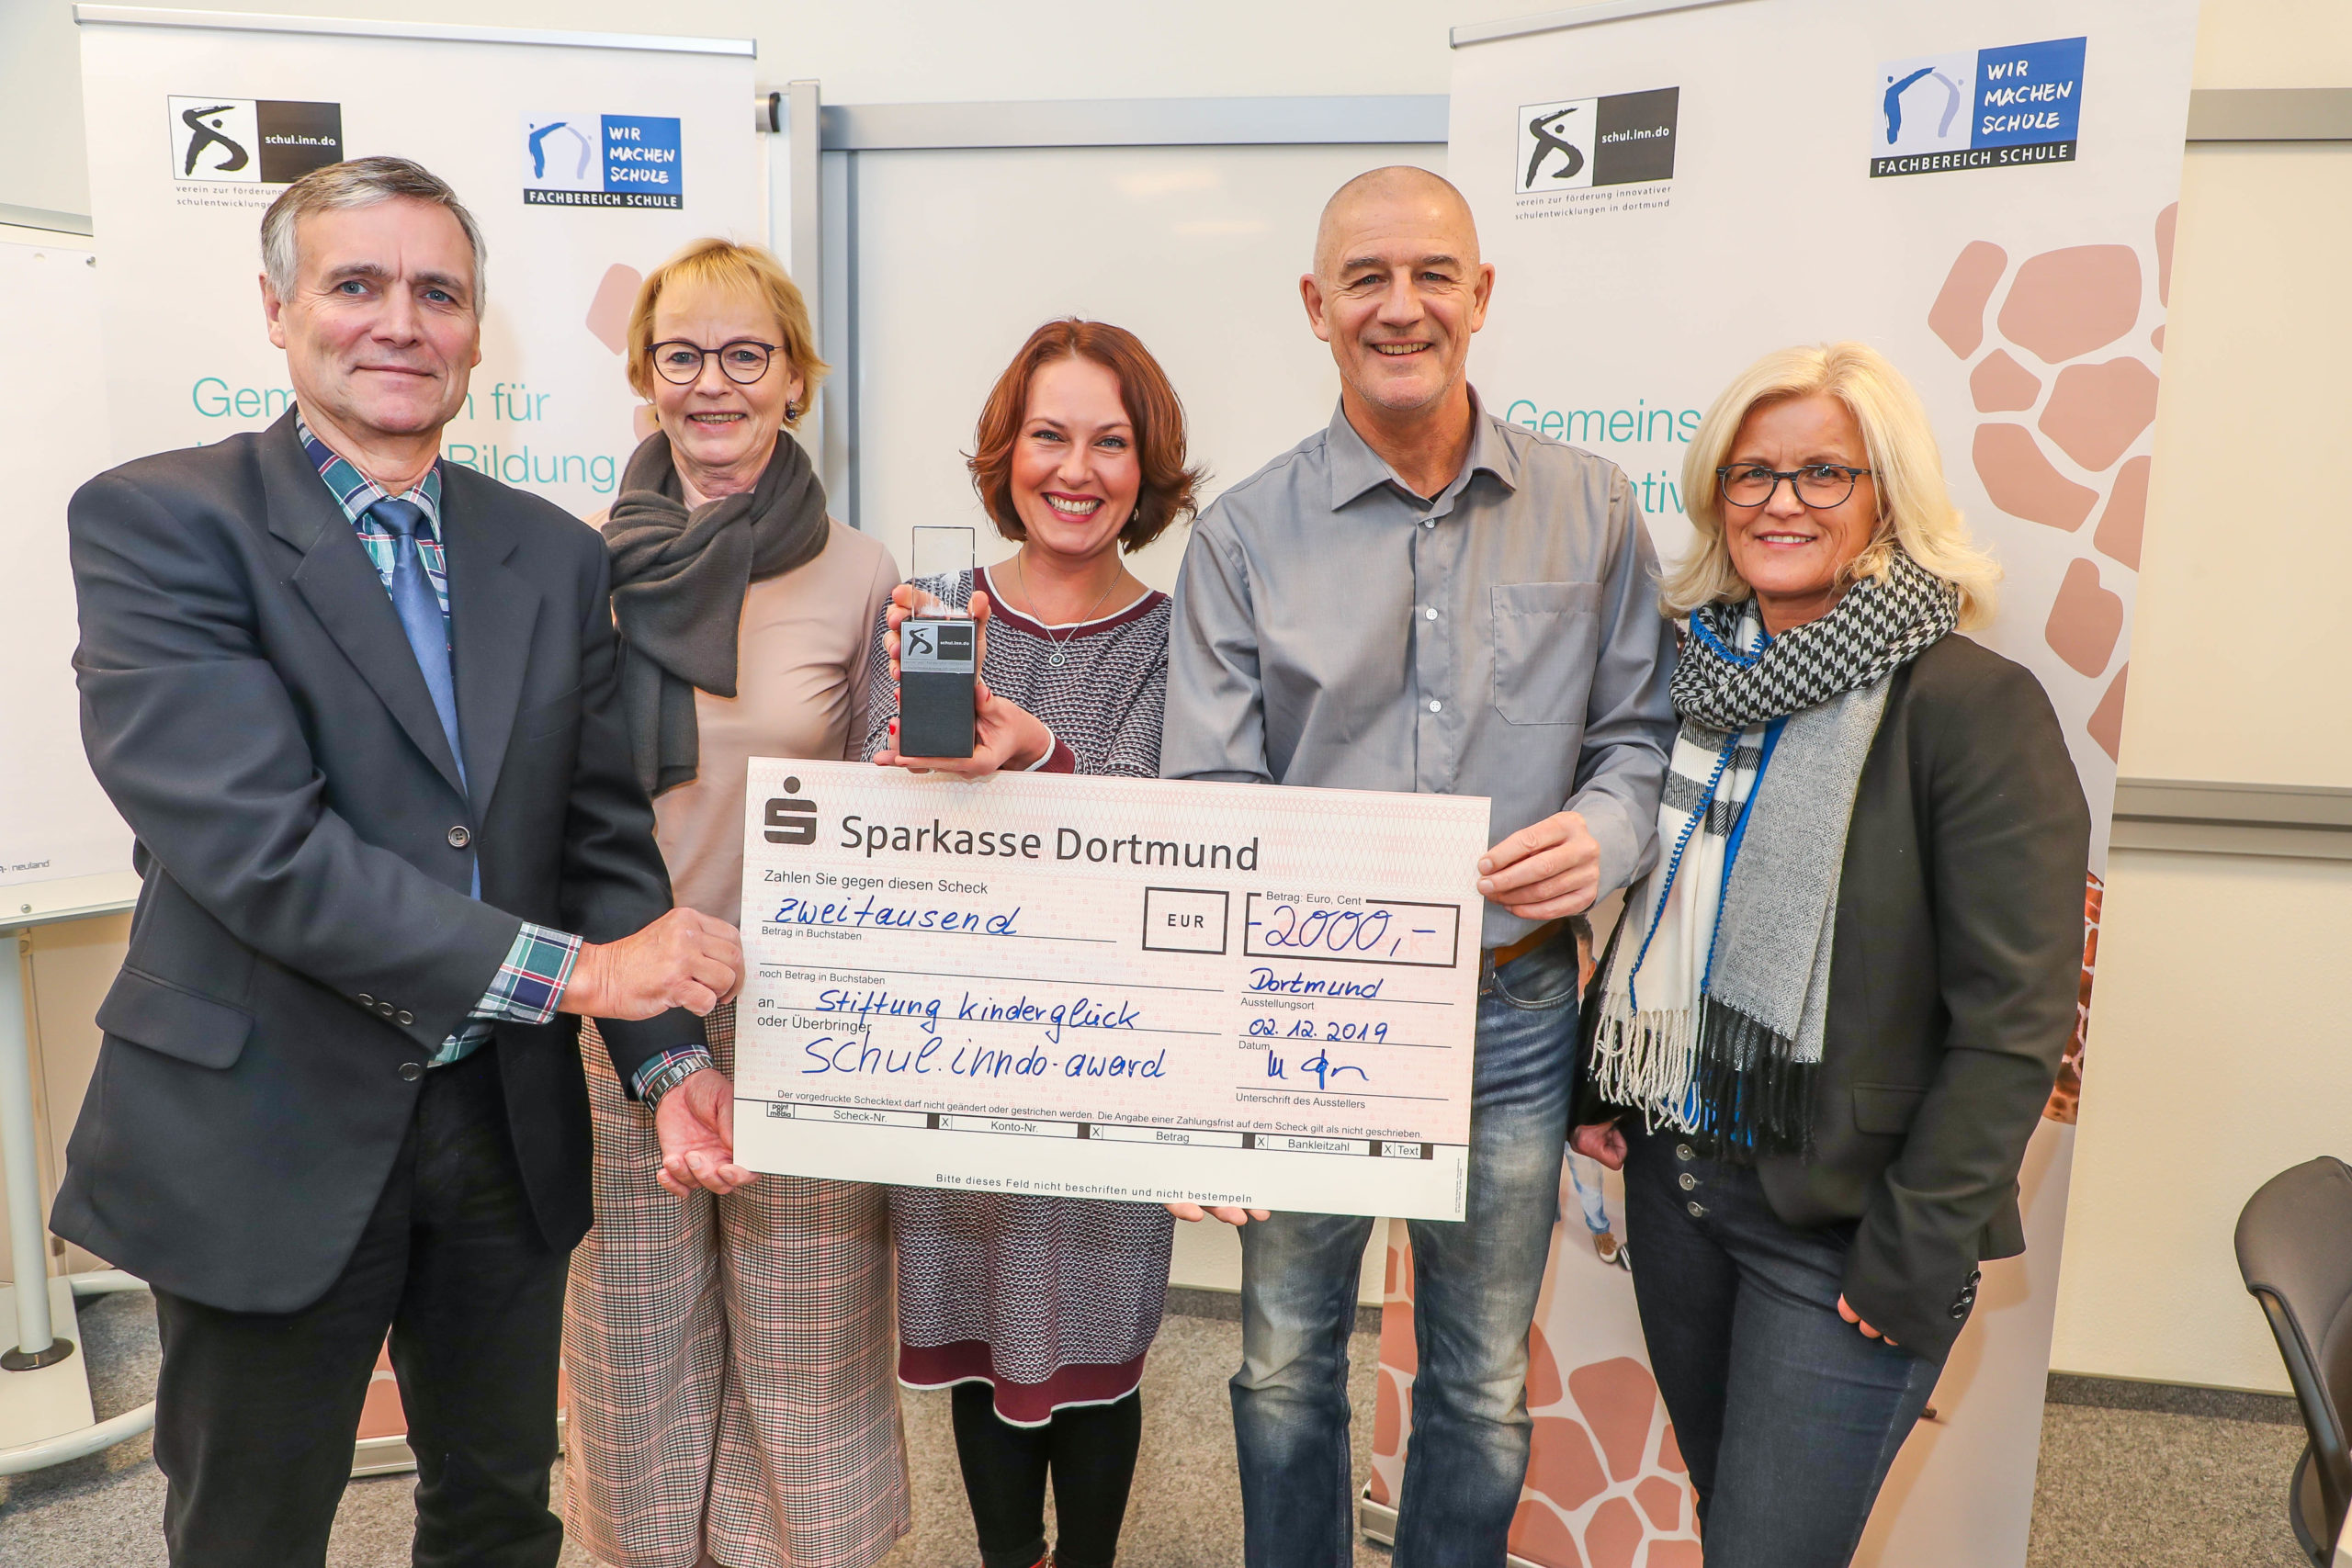 schul.inn.do-award